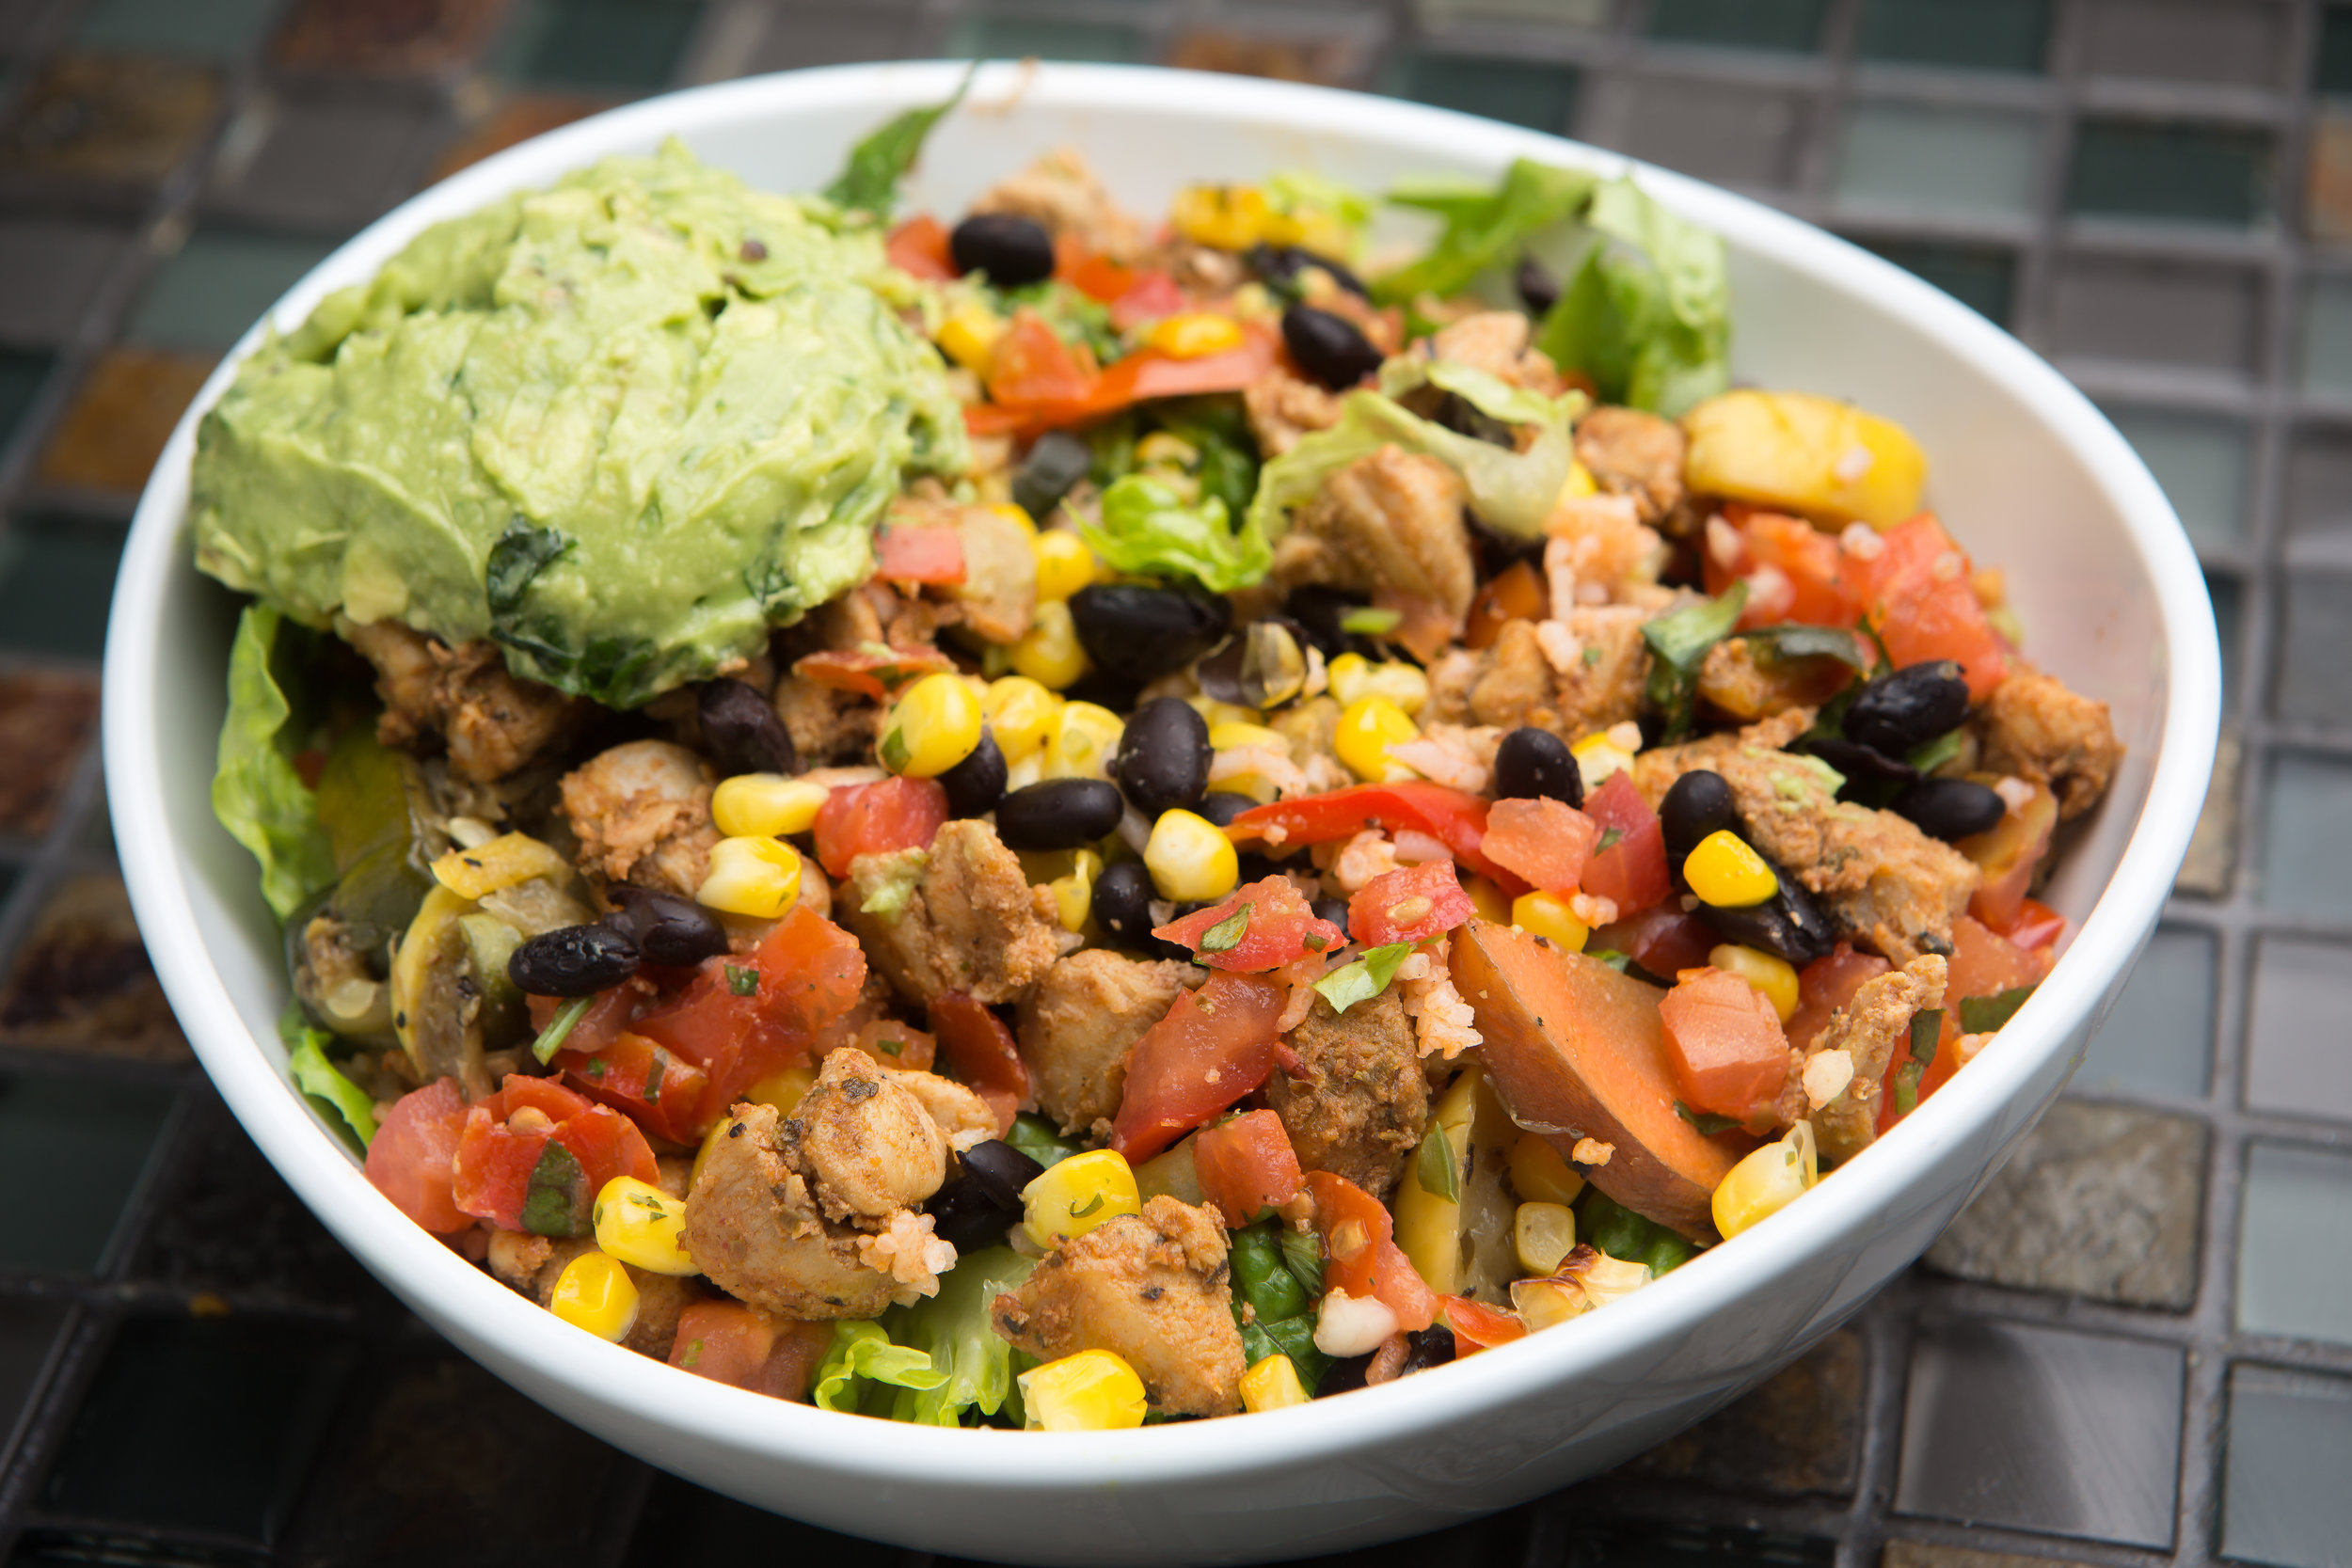 Chicken burrito bowl at OMG